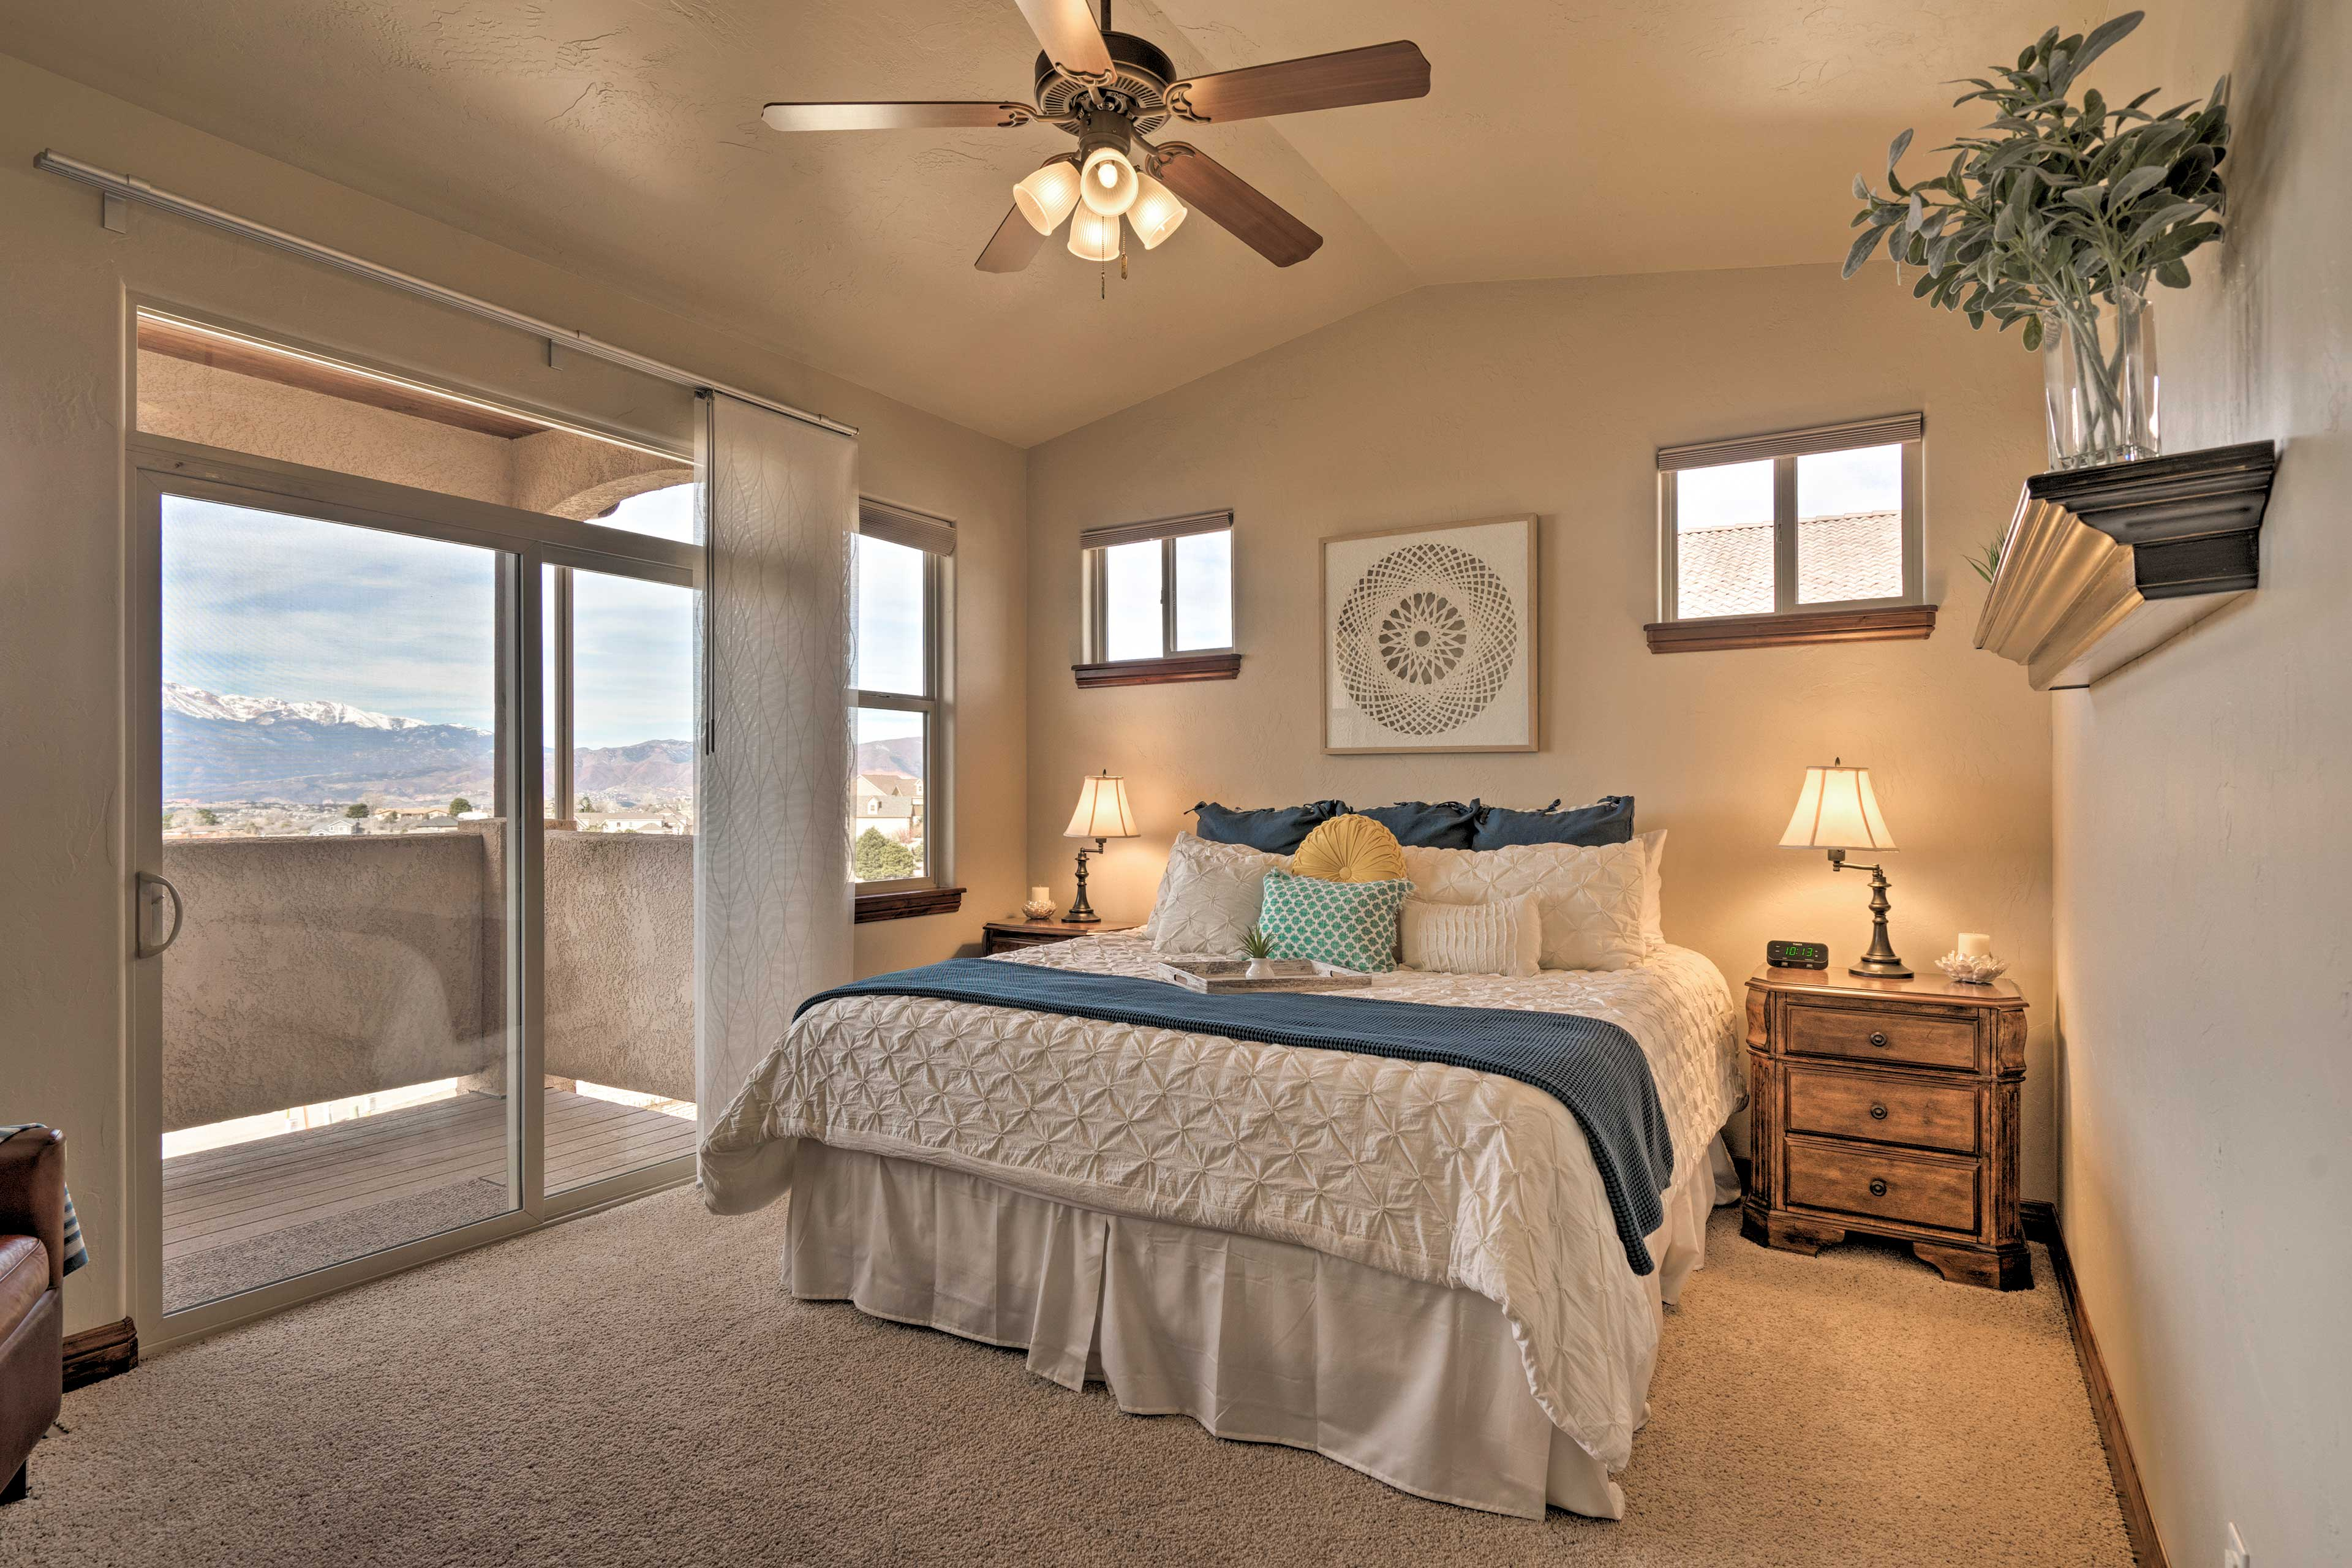 The master bedroom boasts a king bed and private mountain-view balcony.